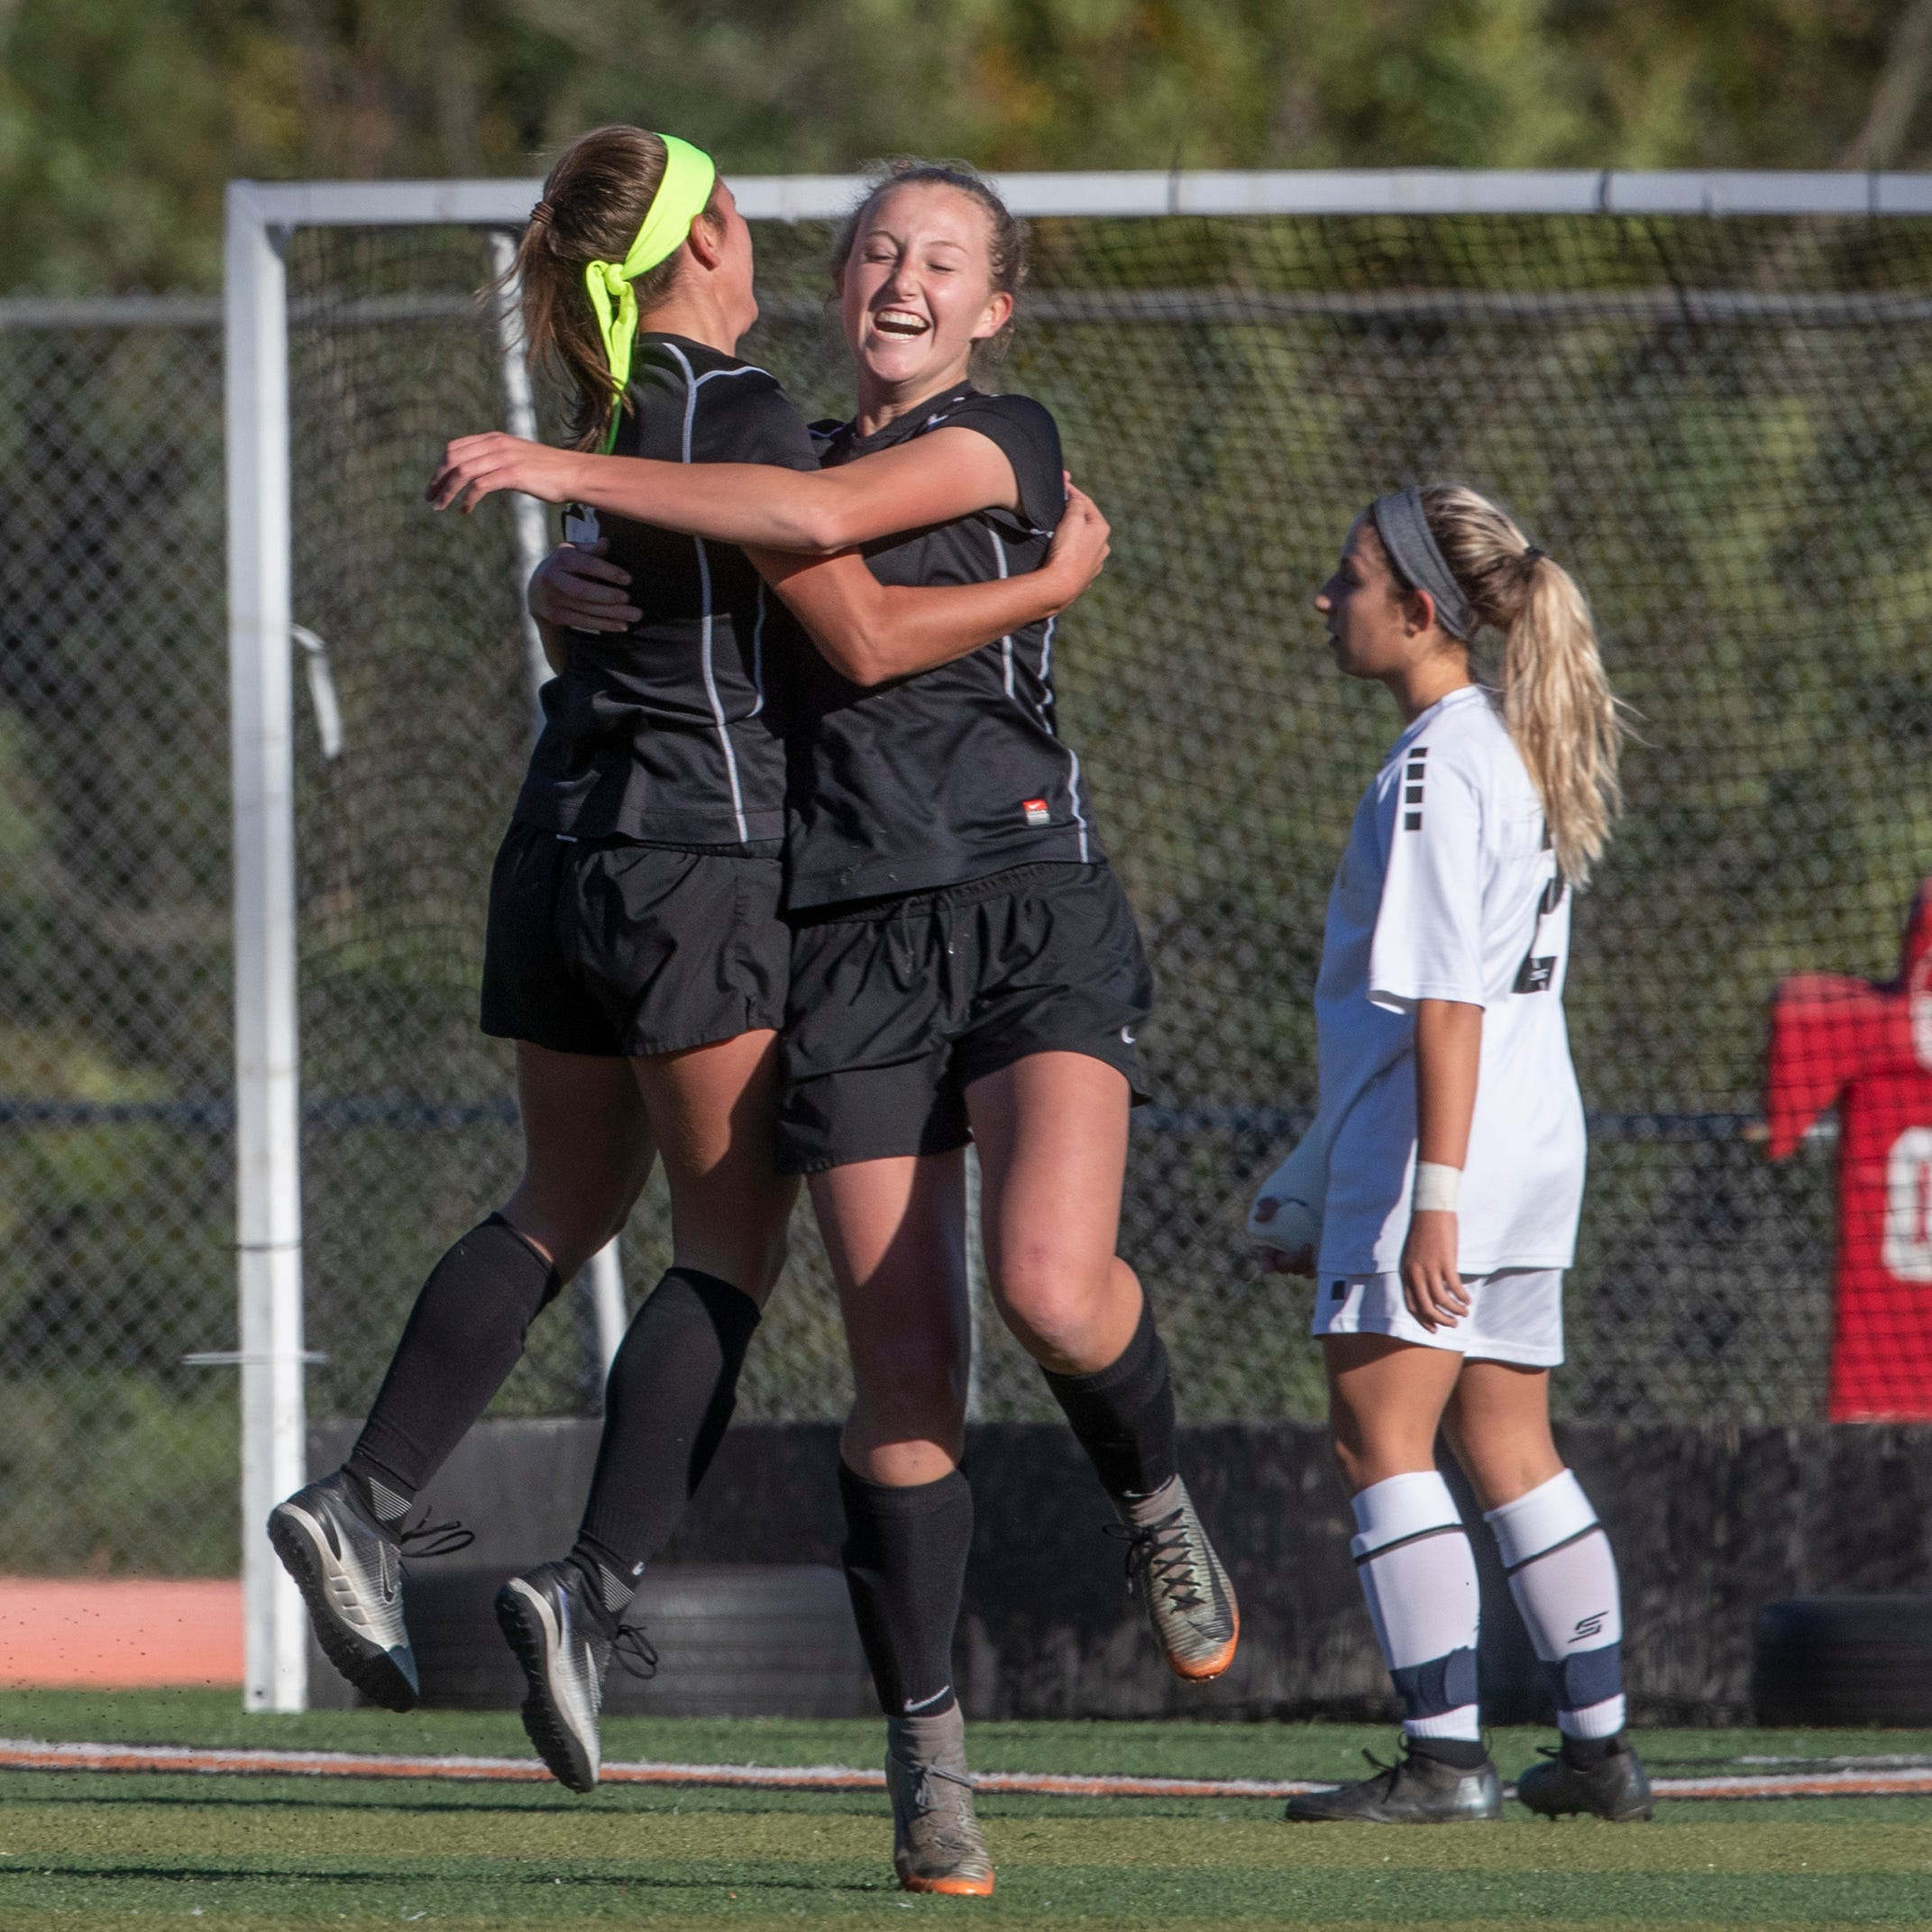 Middletown North's Darien Rinn celebrates with team mates after kicking  in goal past Marlboro's Sofia James for North's second goal of game. Middletown North Girls Soccer vs Marlboro in Shore Conference Tournament game in Middletown, NJ on October 18, 2018.